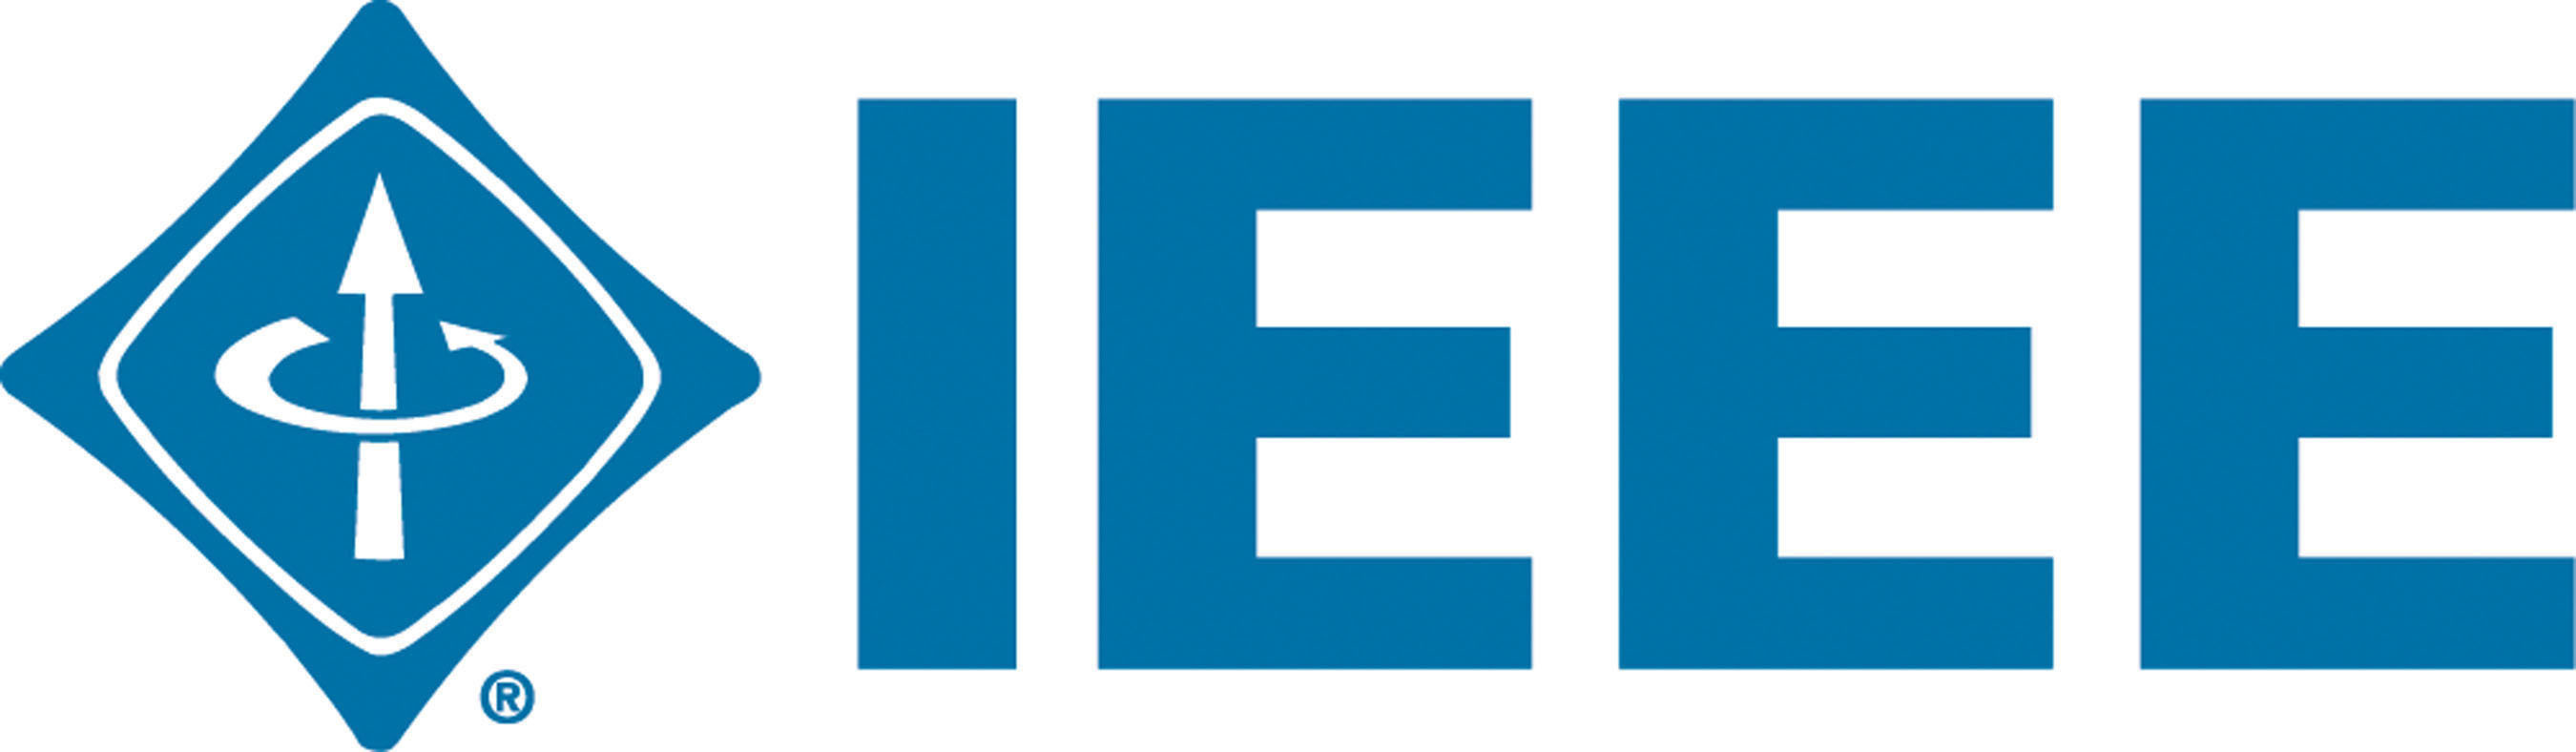 IEEE - Advancing Technology for Humanity.